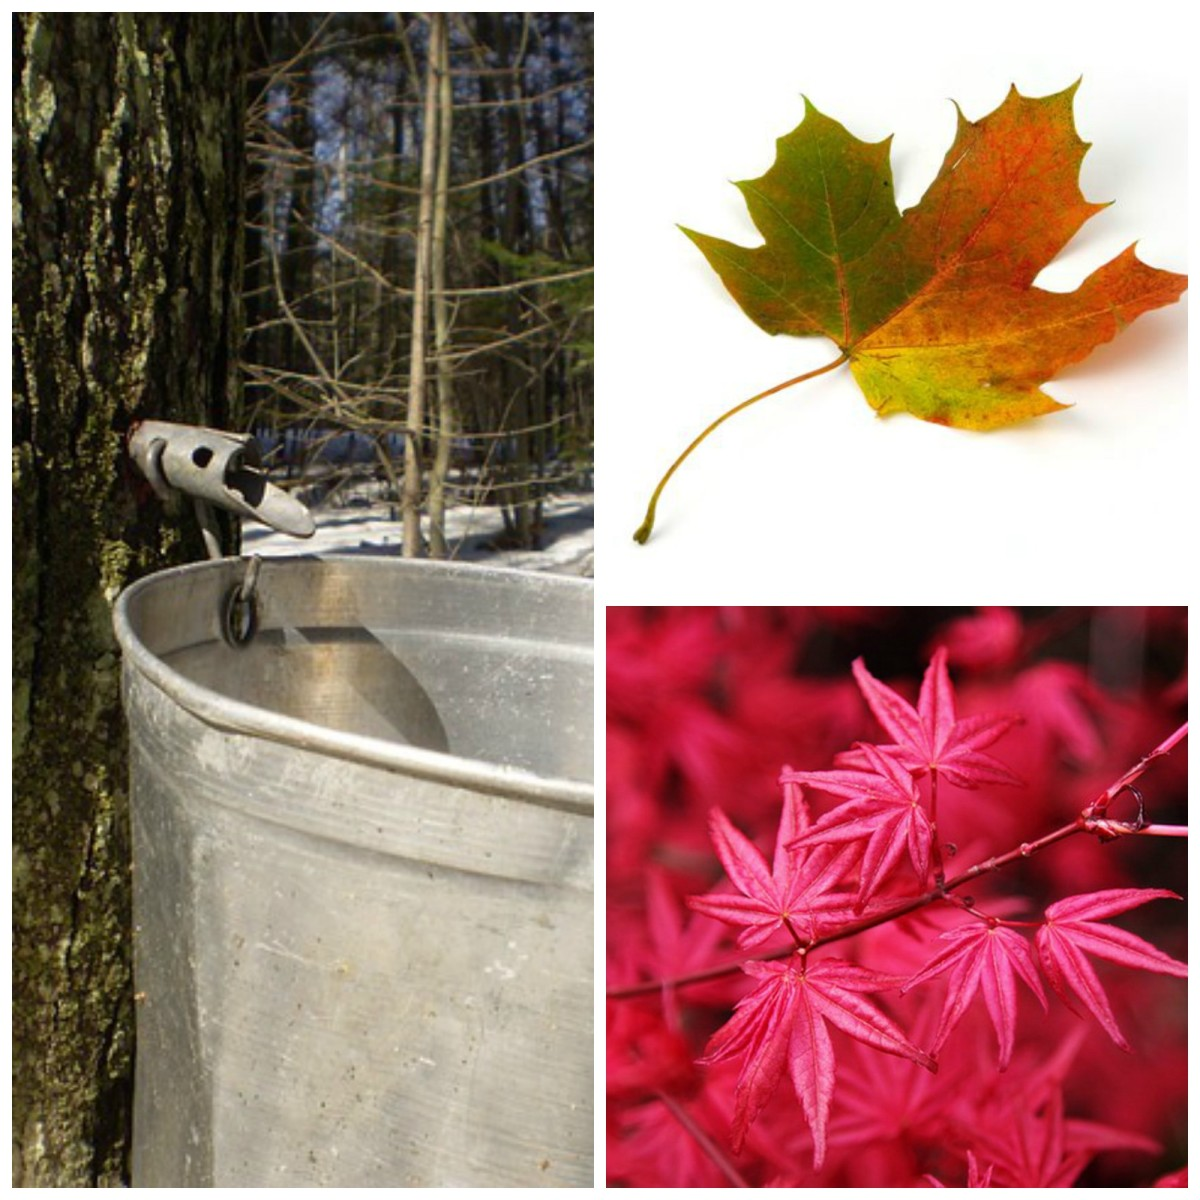 Pictures of Harvesting Maple Syrup, Maple Leaf and Japanese Maple Foliage